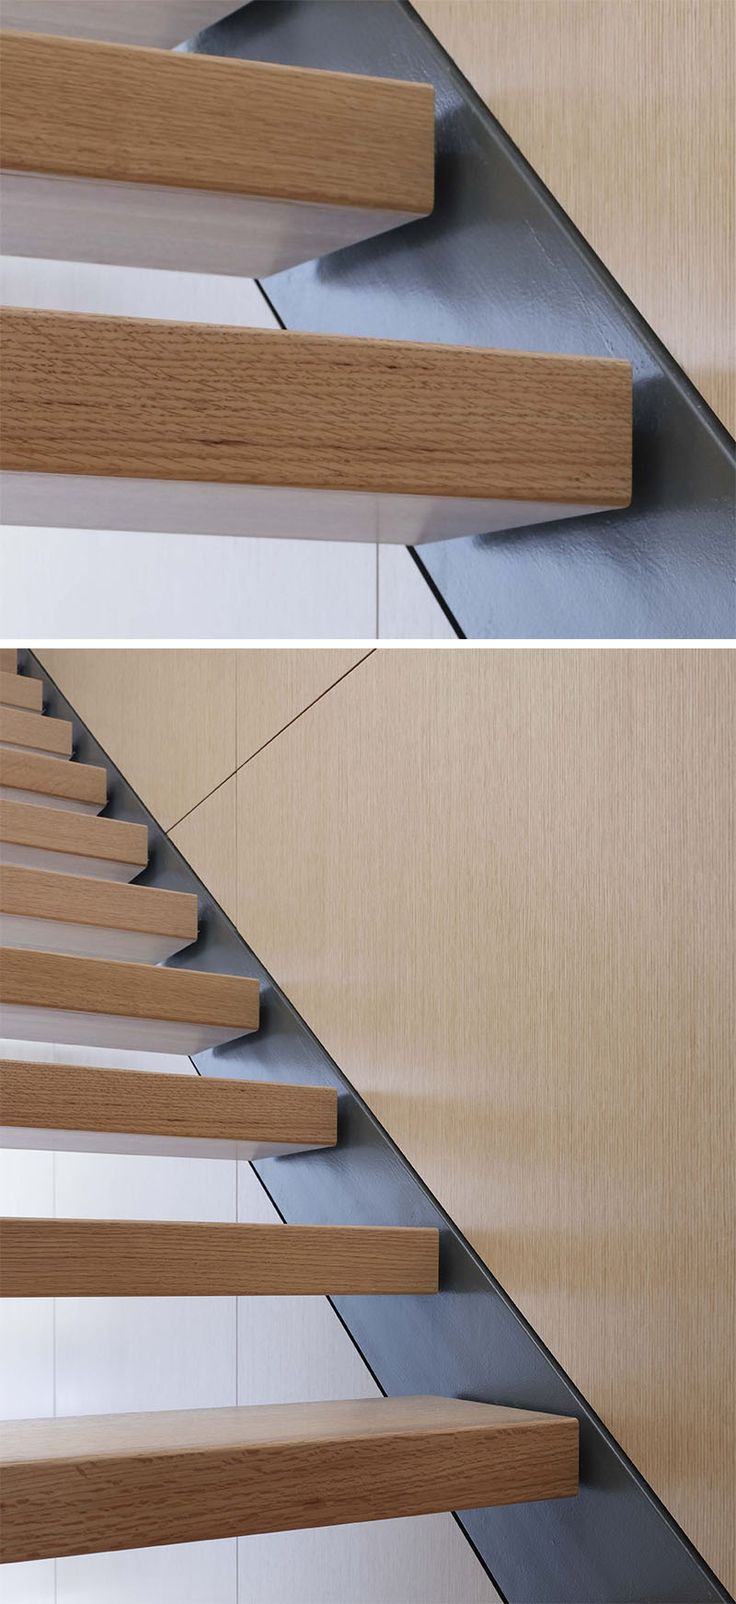 18 Examples Of Stair Details To Inspire You // These wood steps are attached to steel beams that carry the stairs all the way up.